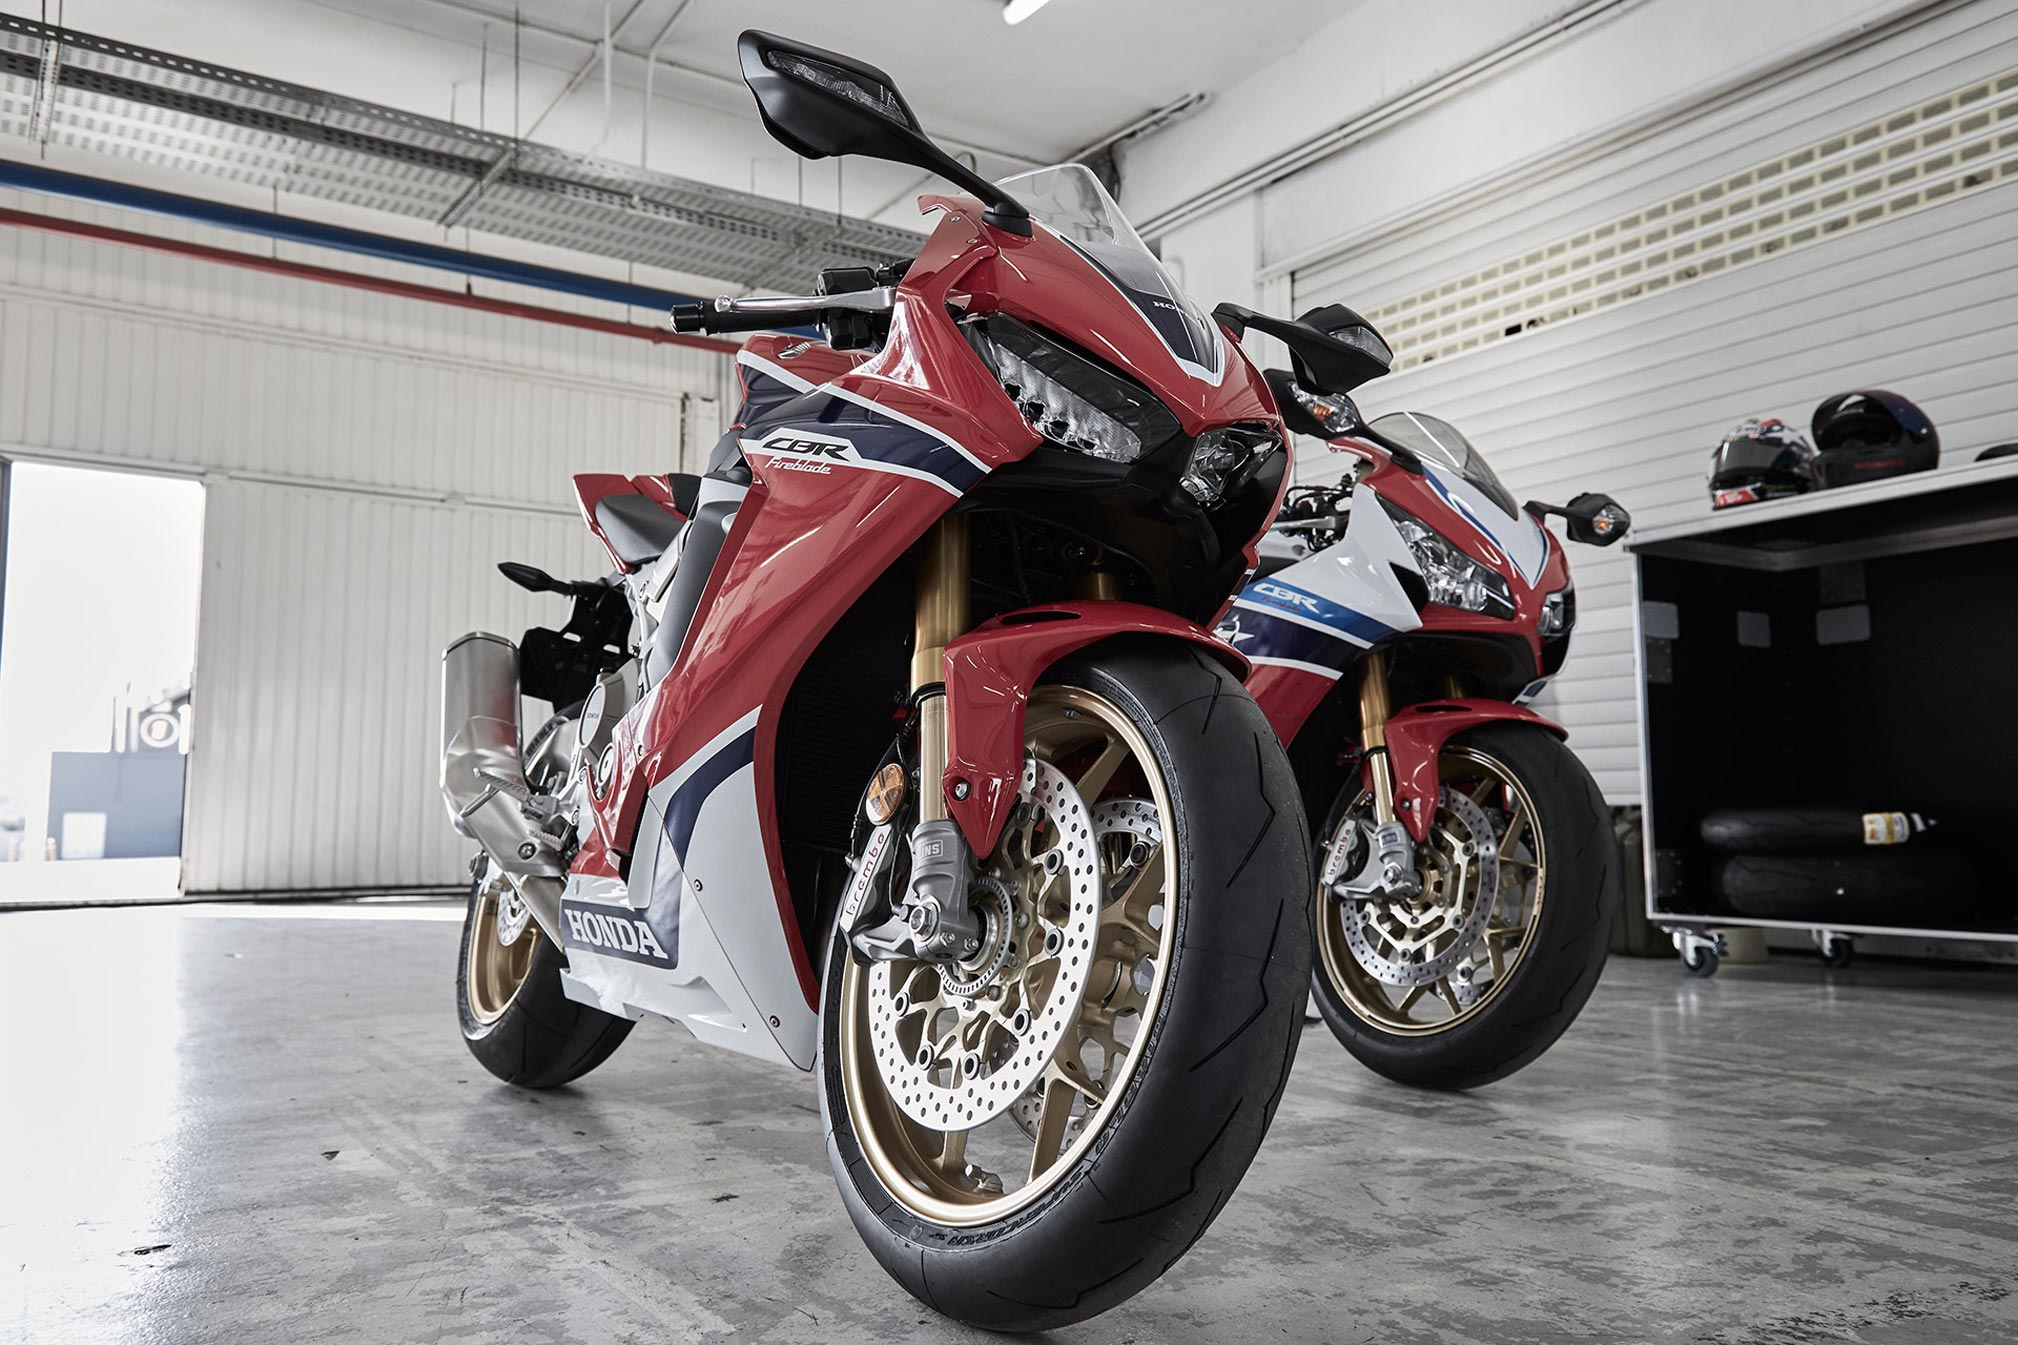 2018 Honda CBR1000RR SP Review • Total Motorcycle